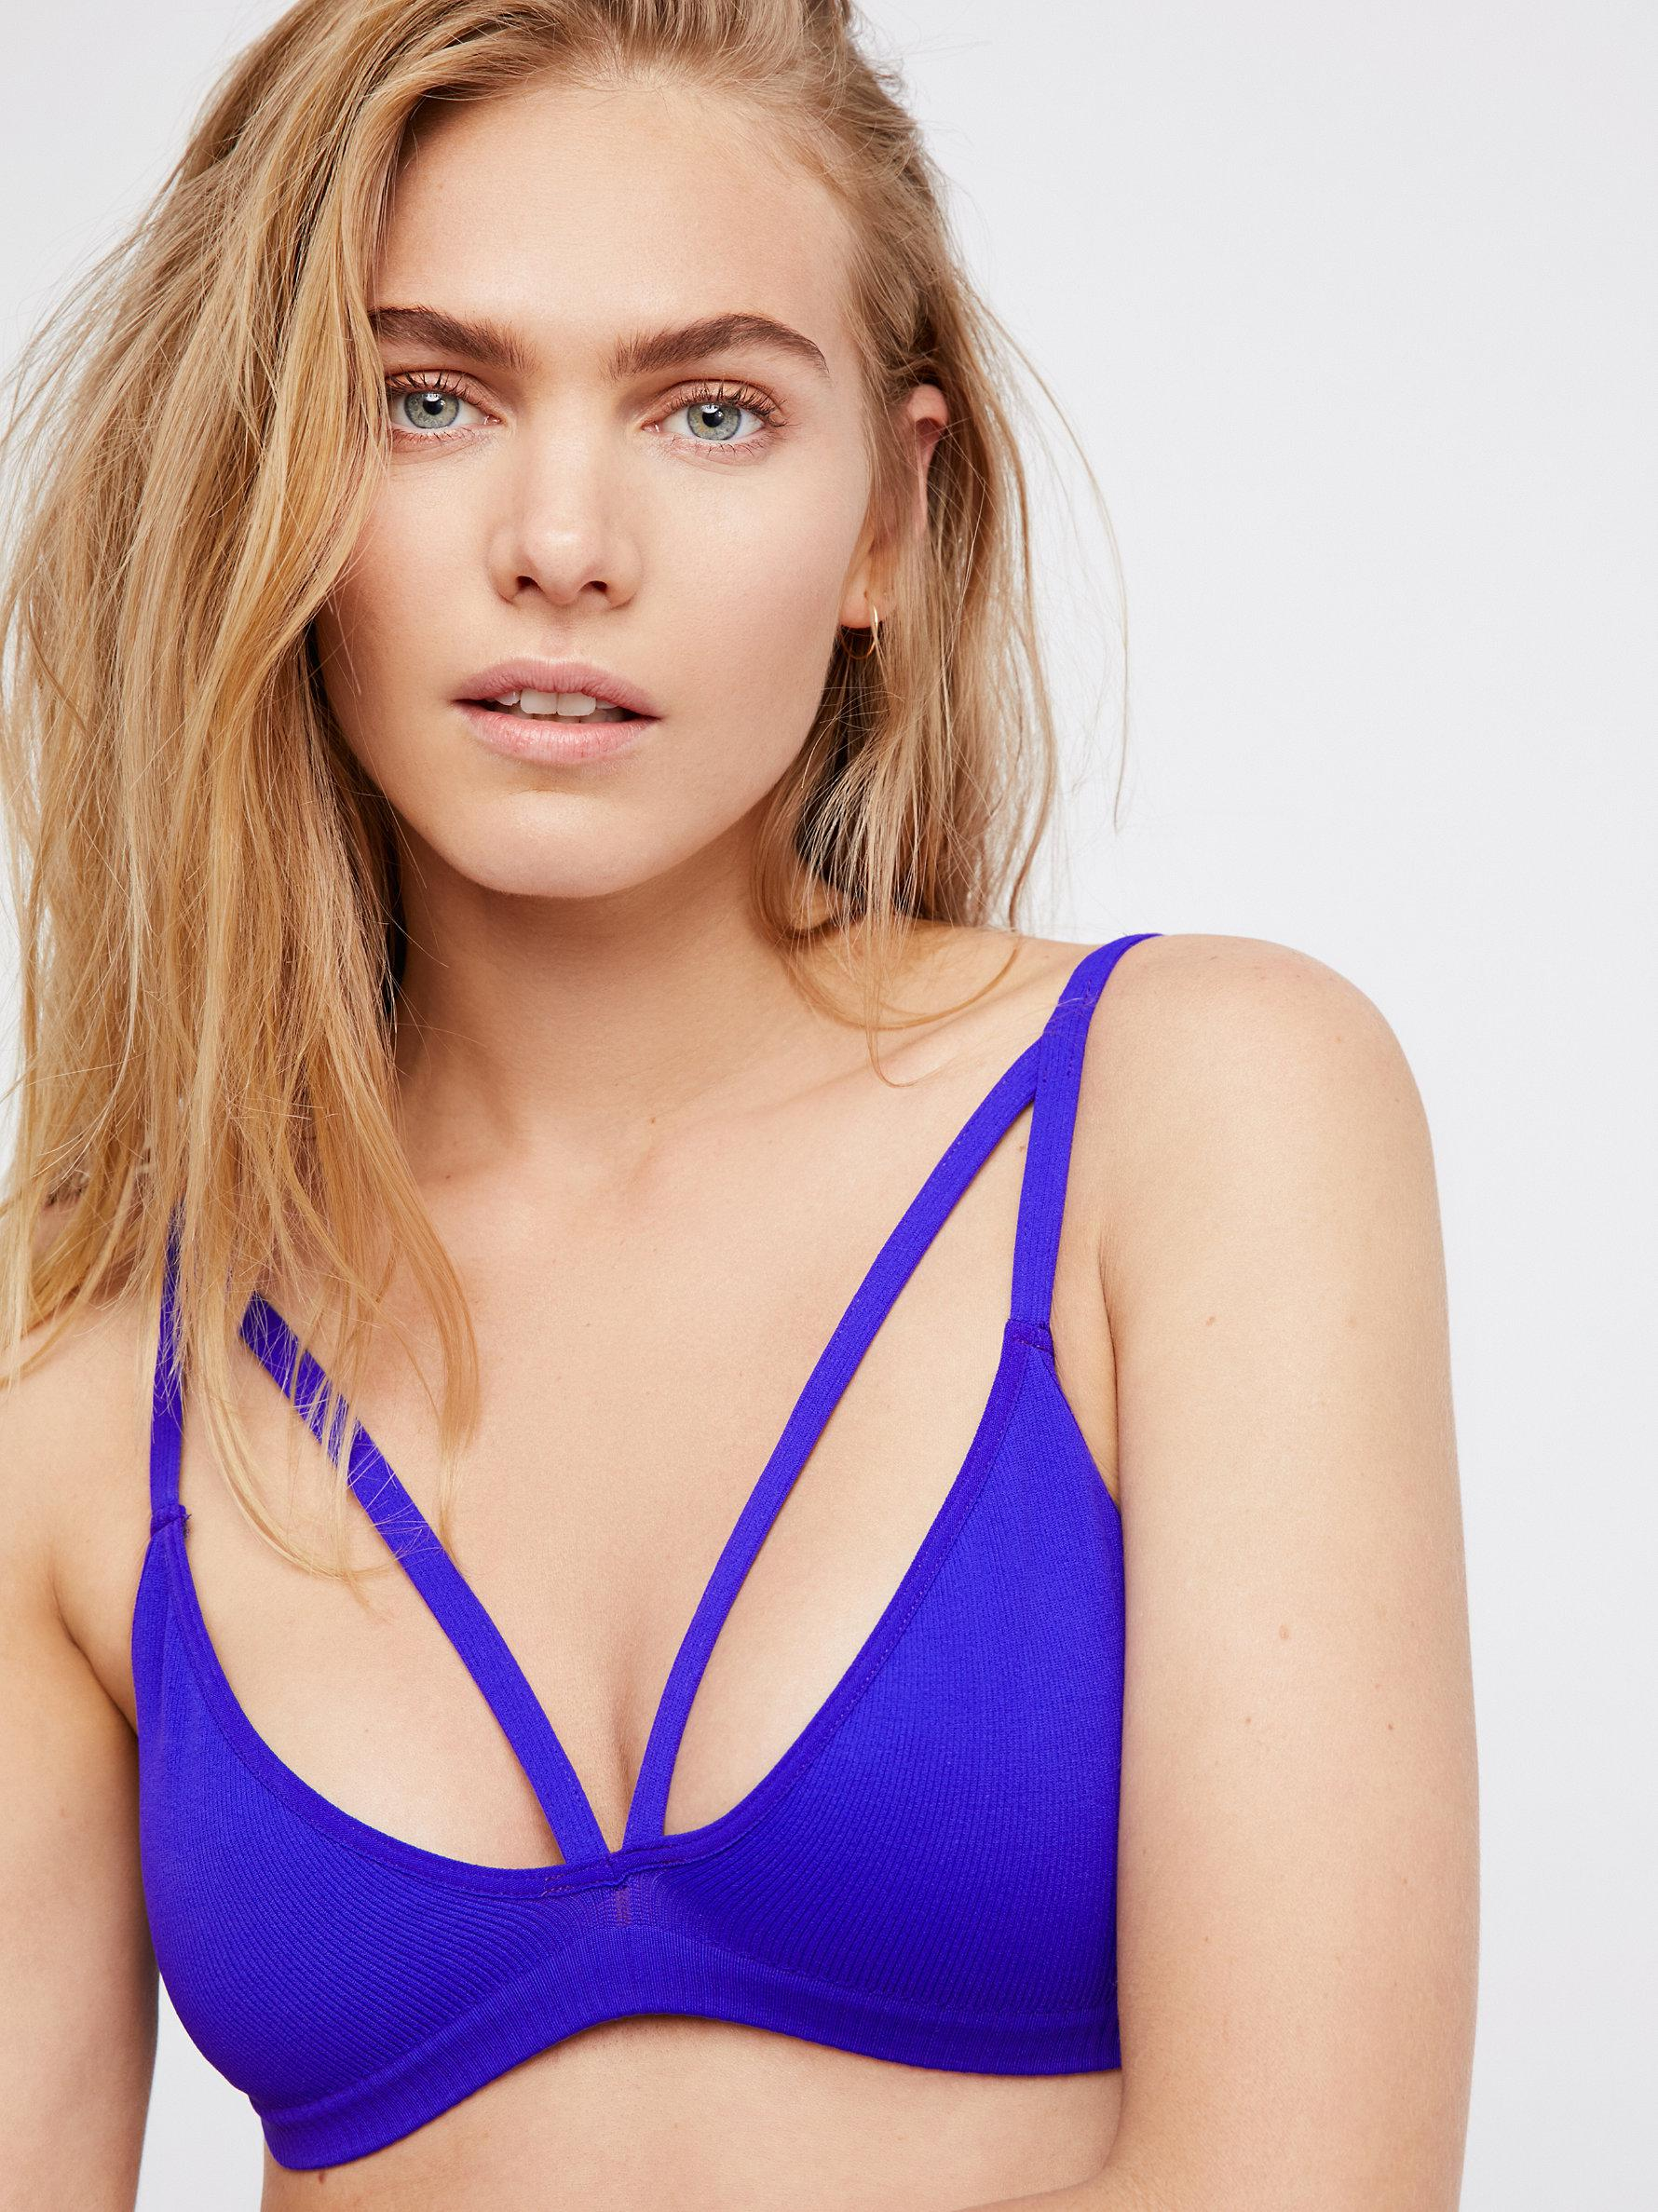 f6b9381e84 Free People Keira Seamless Bralette in Purple - Lyst